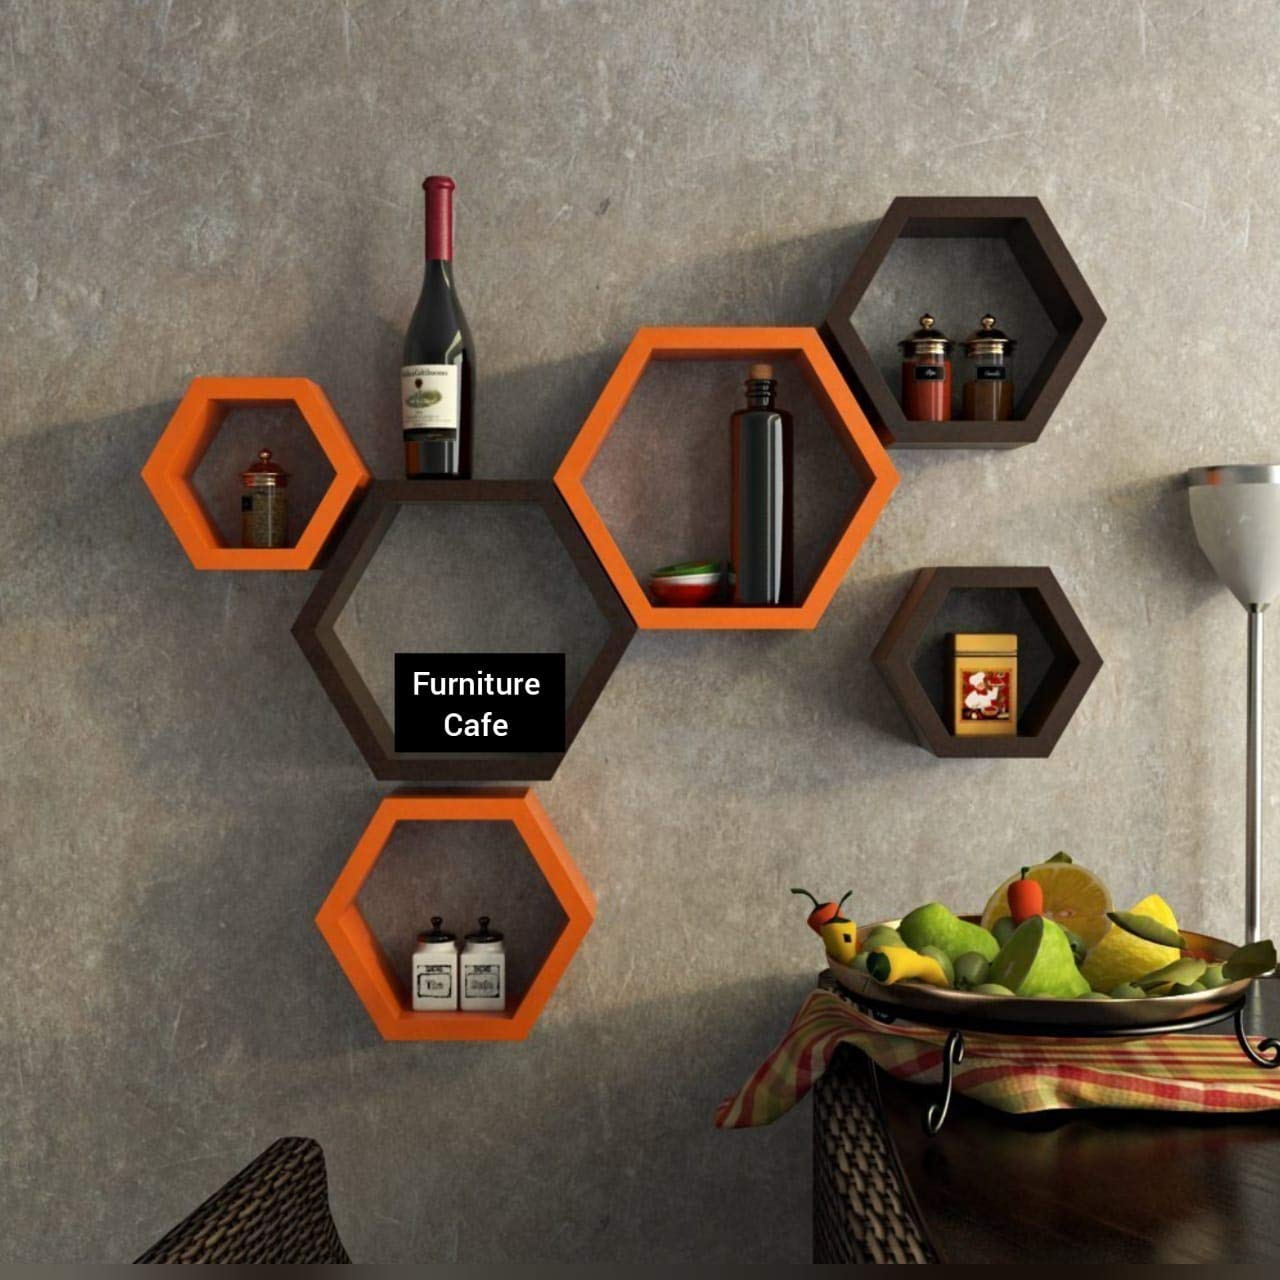 Hexagon Shape Set of 6 Floating Wall Shelves